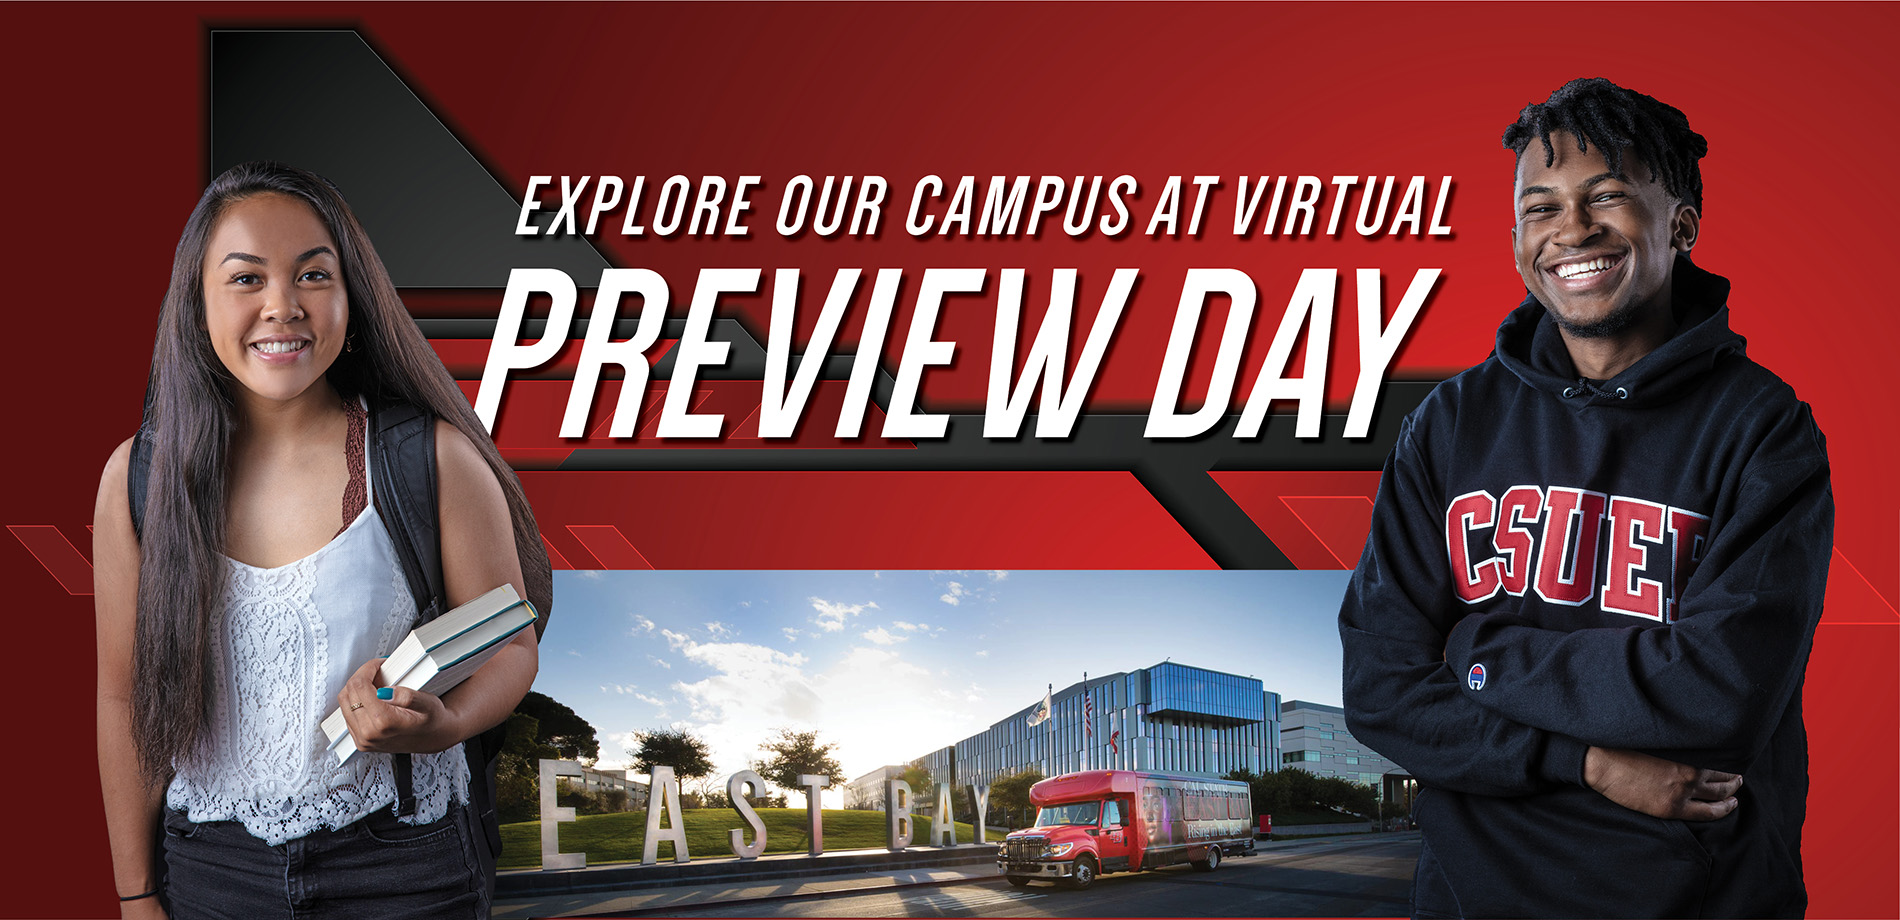 Preview Day banner of student photos